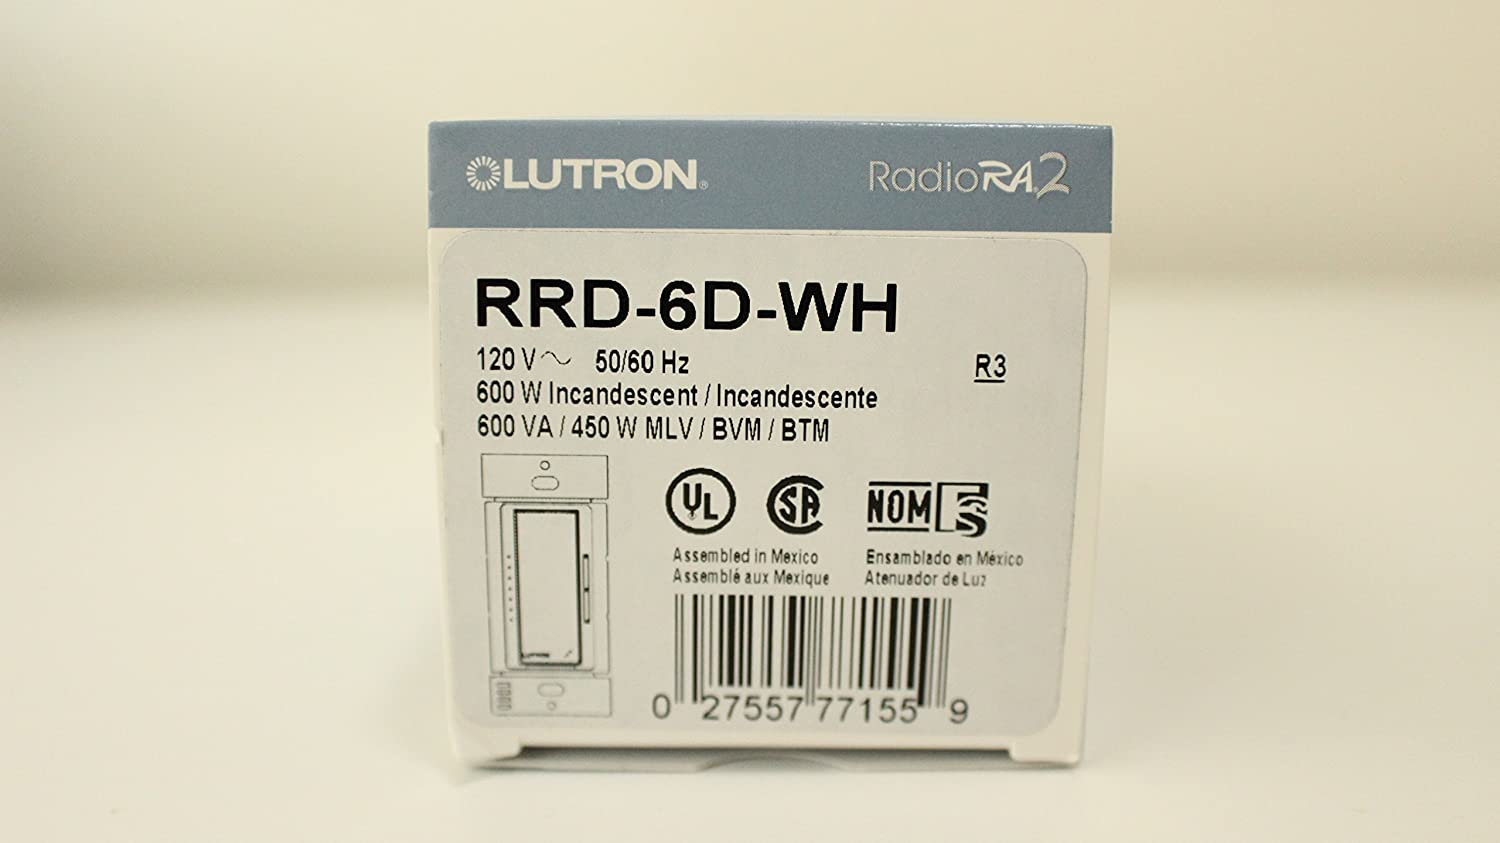 81JPQLoku%2BL._SL1500_ lutron rrd 6d wh ra2 600w dimmer wall dimmer switches amazon com Lutron RRD at gsmx.co